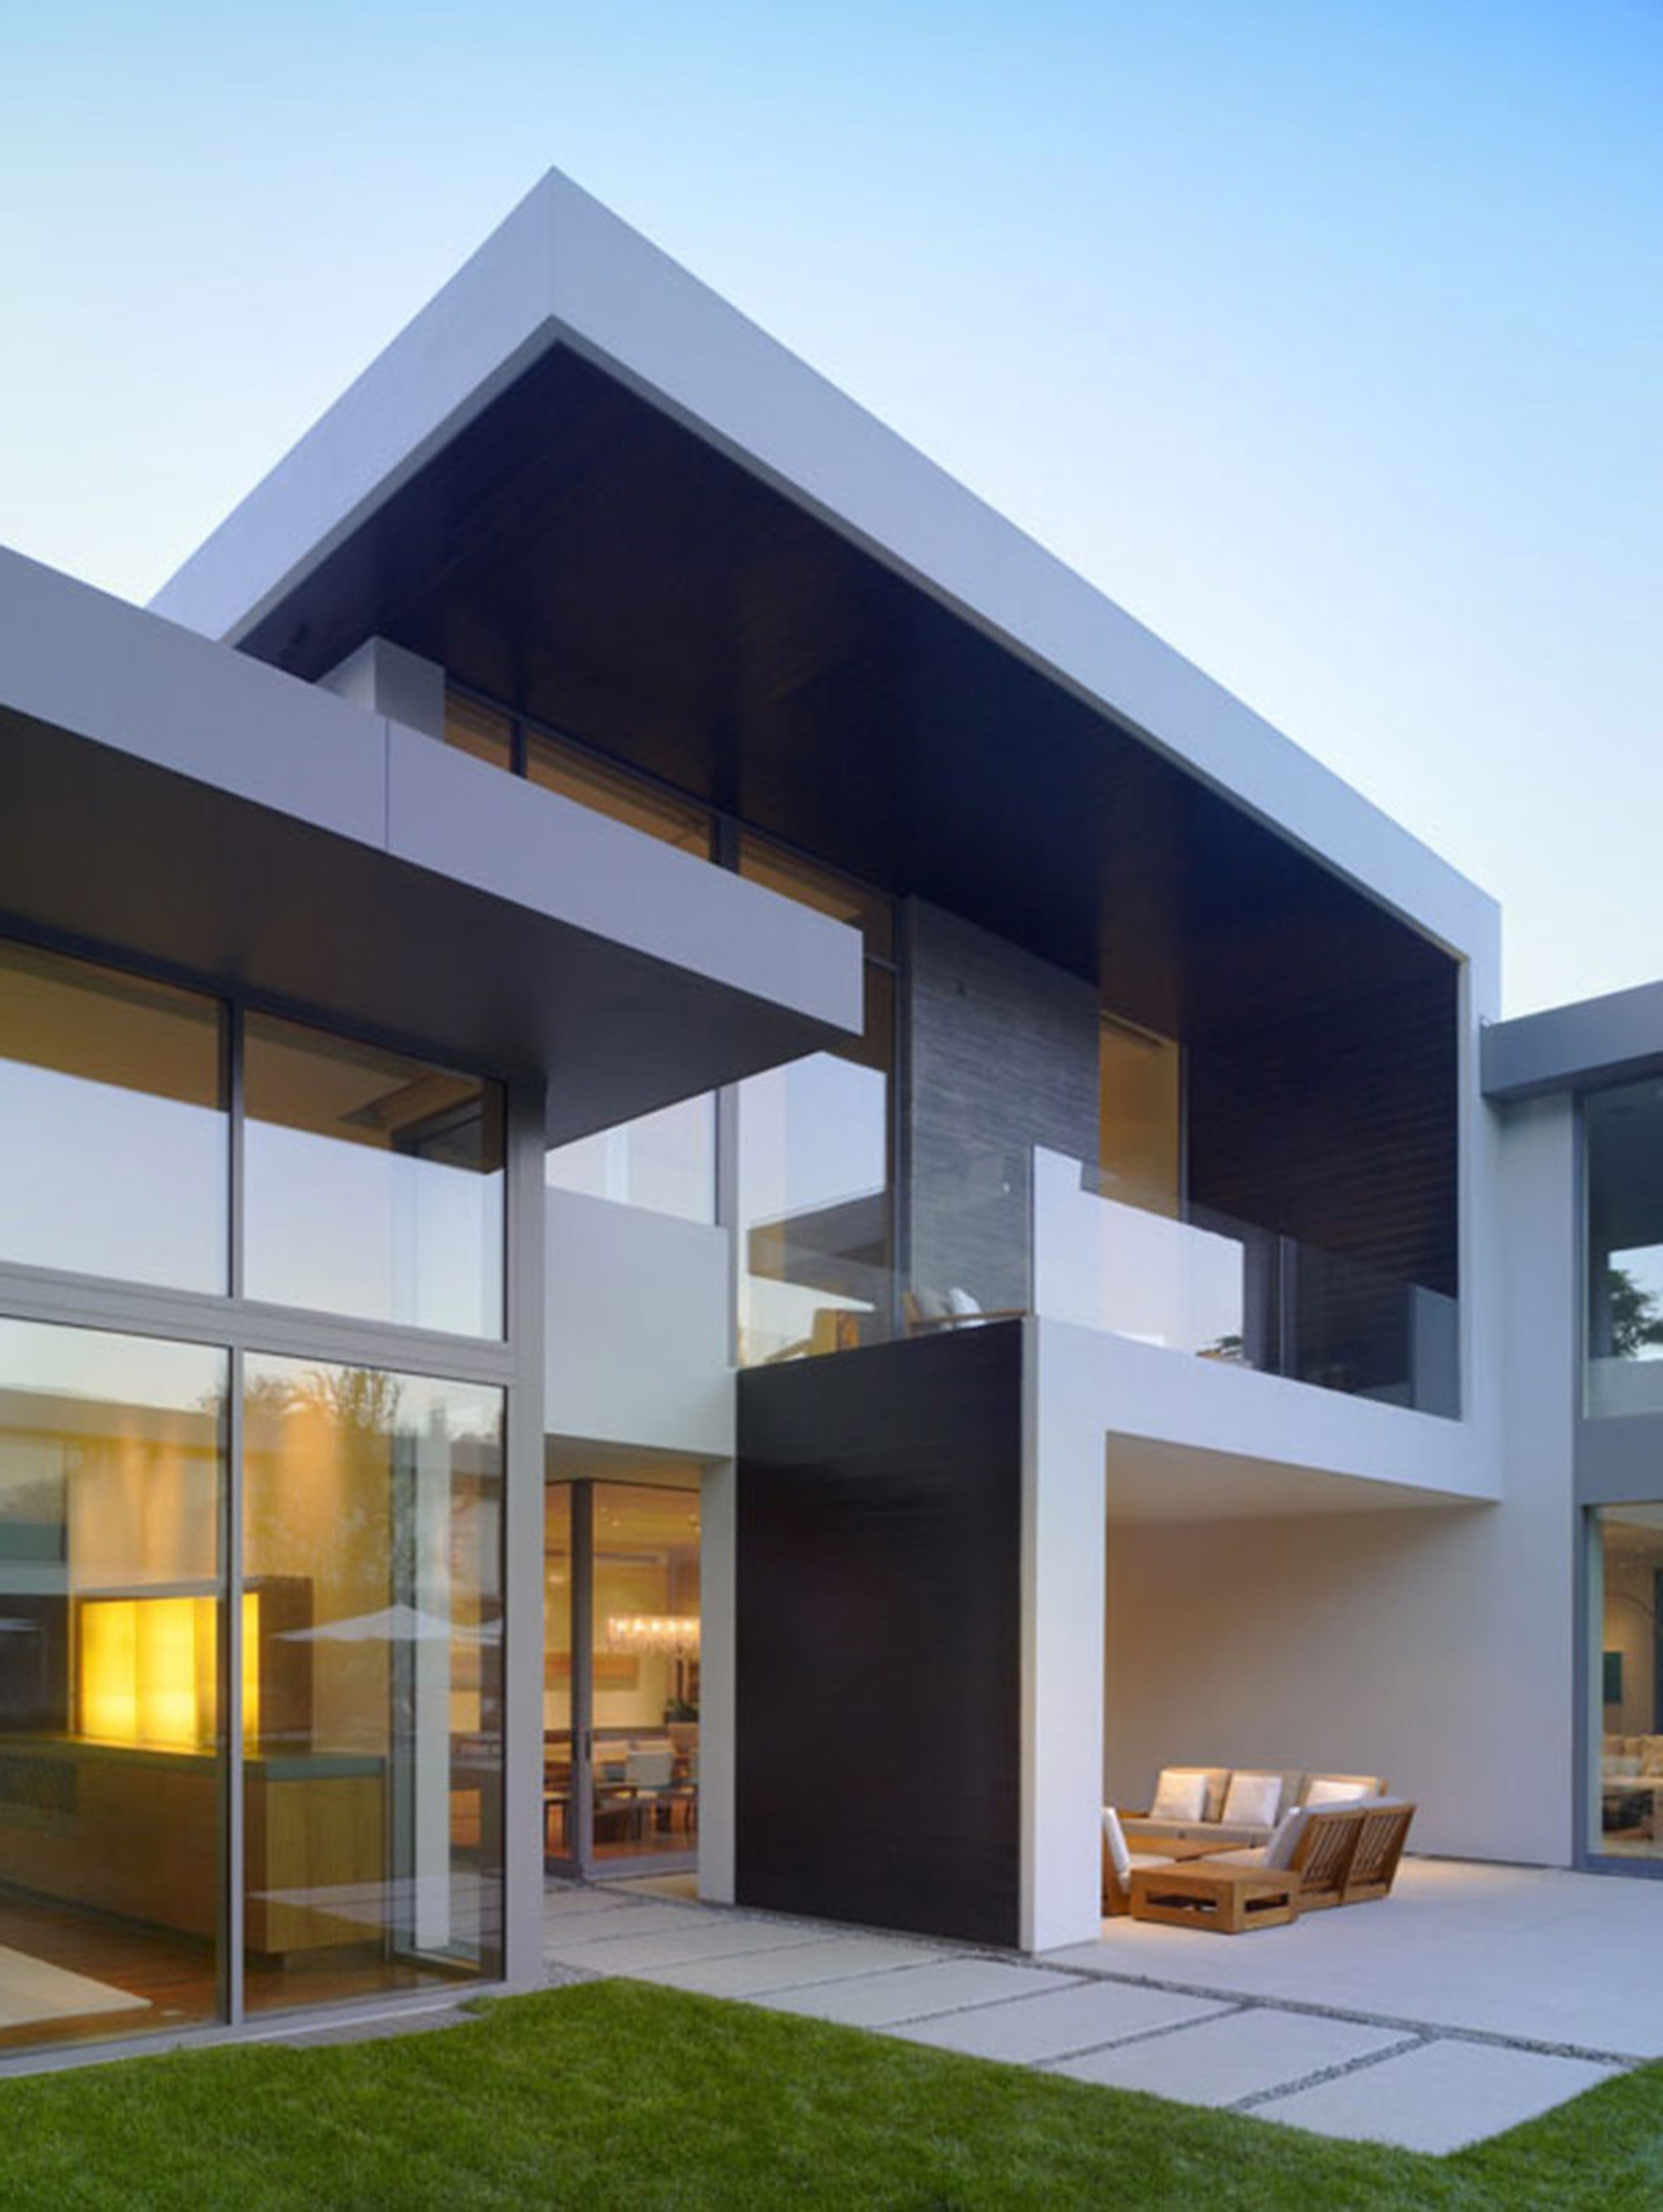 Minimalist Glasses House Exterior Design Gallery Outrial Exterior Stairs Beside Glass Walls Architecture Homes Design With Glass Walls (View 4 of 25)